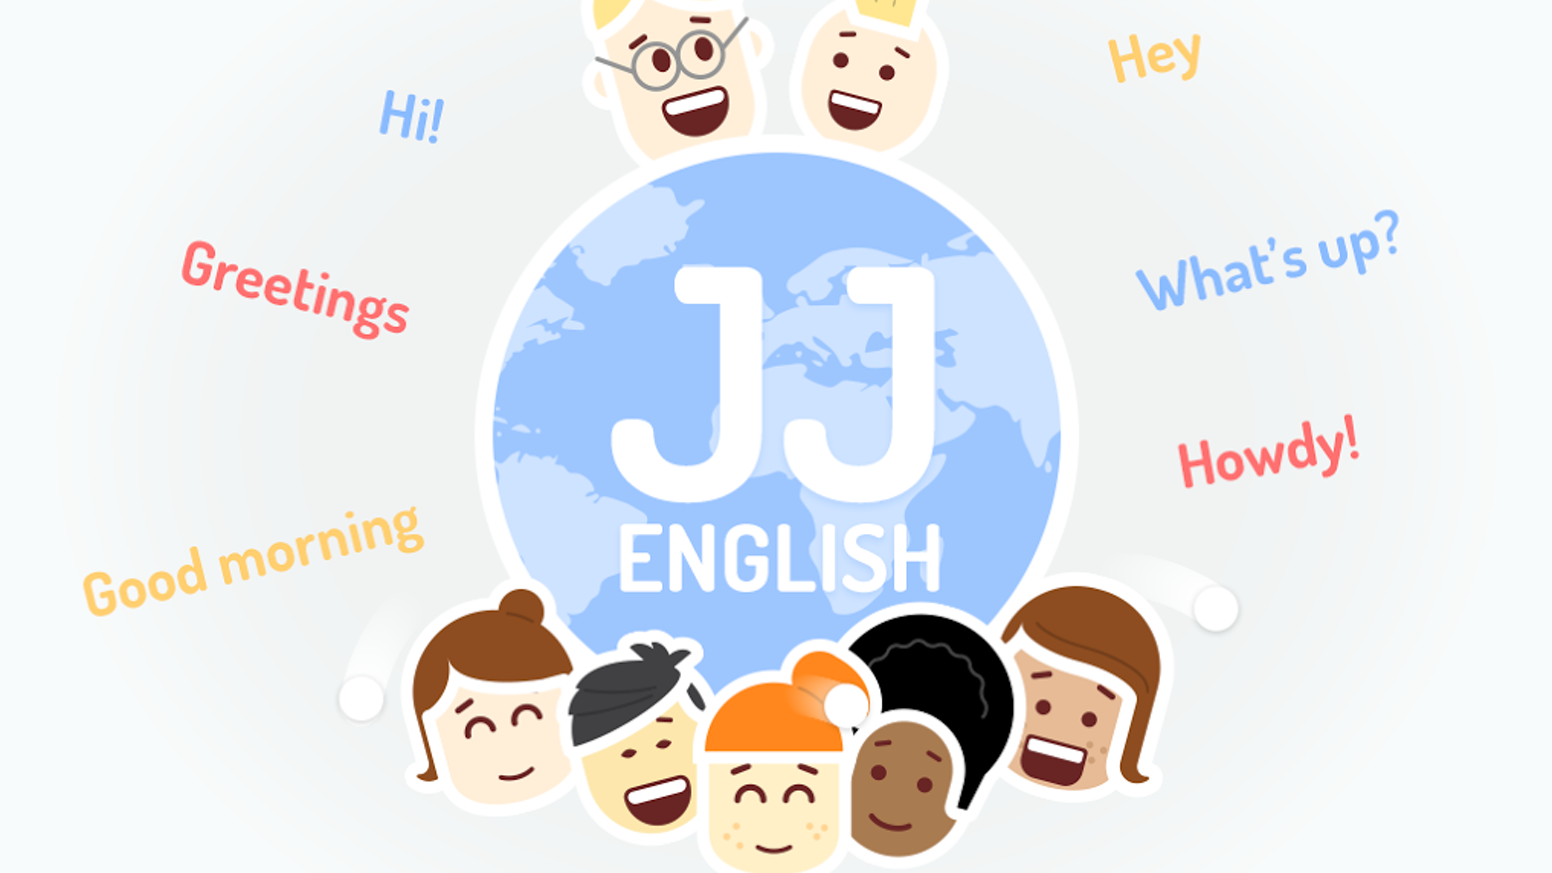 A digital platform providing customized English lessons based on student progress, where teachers and students can interact.